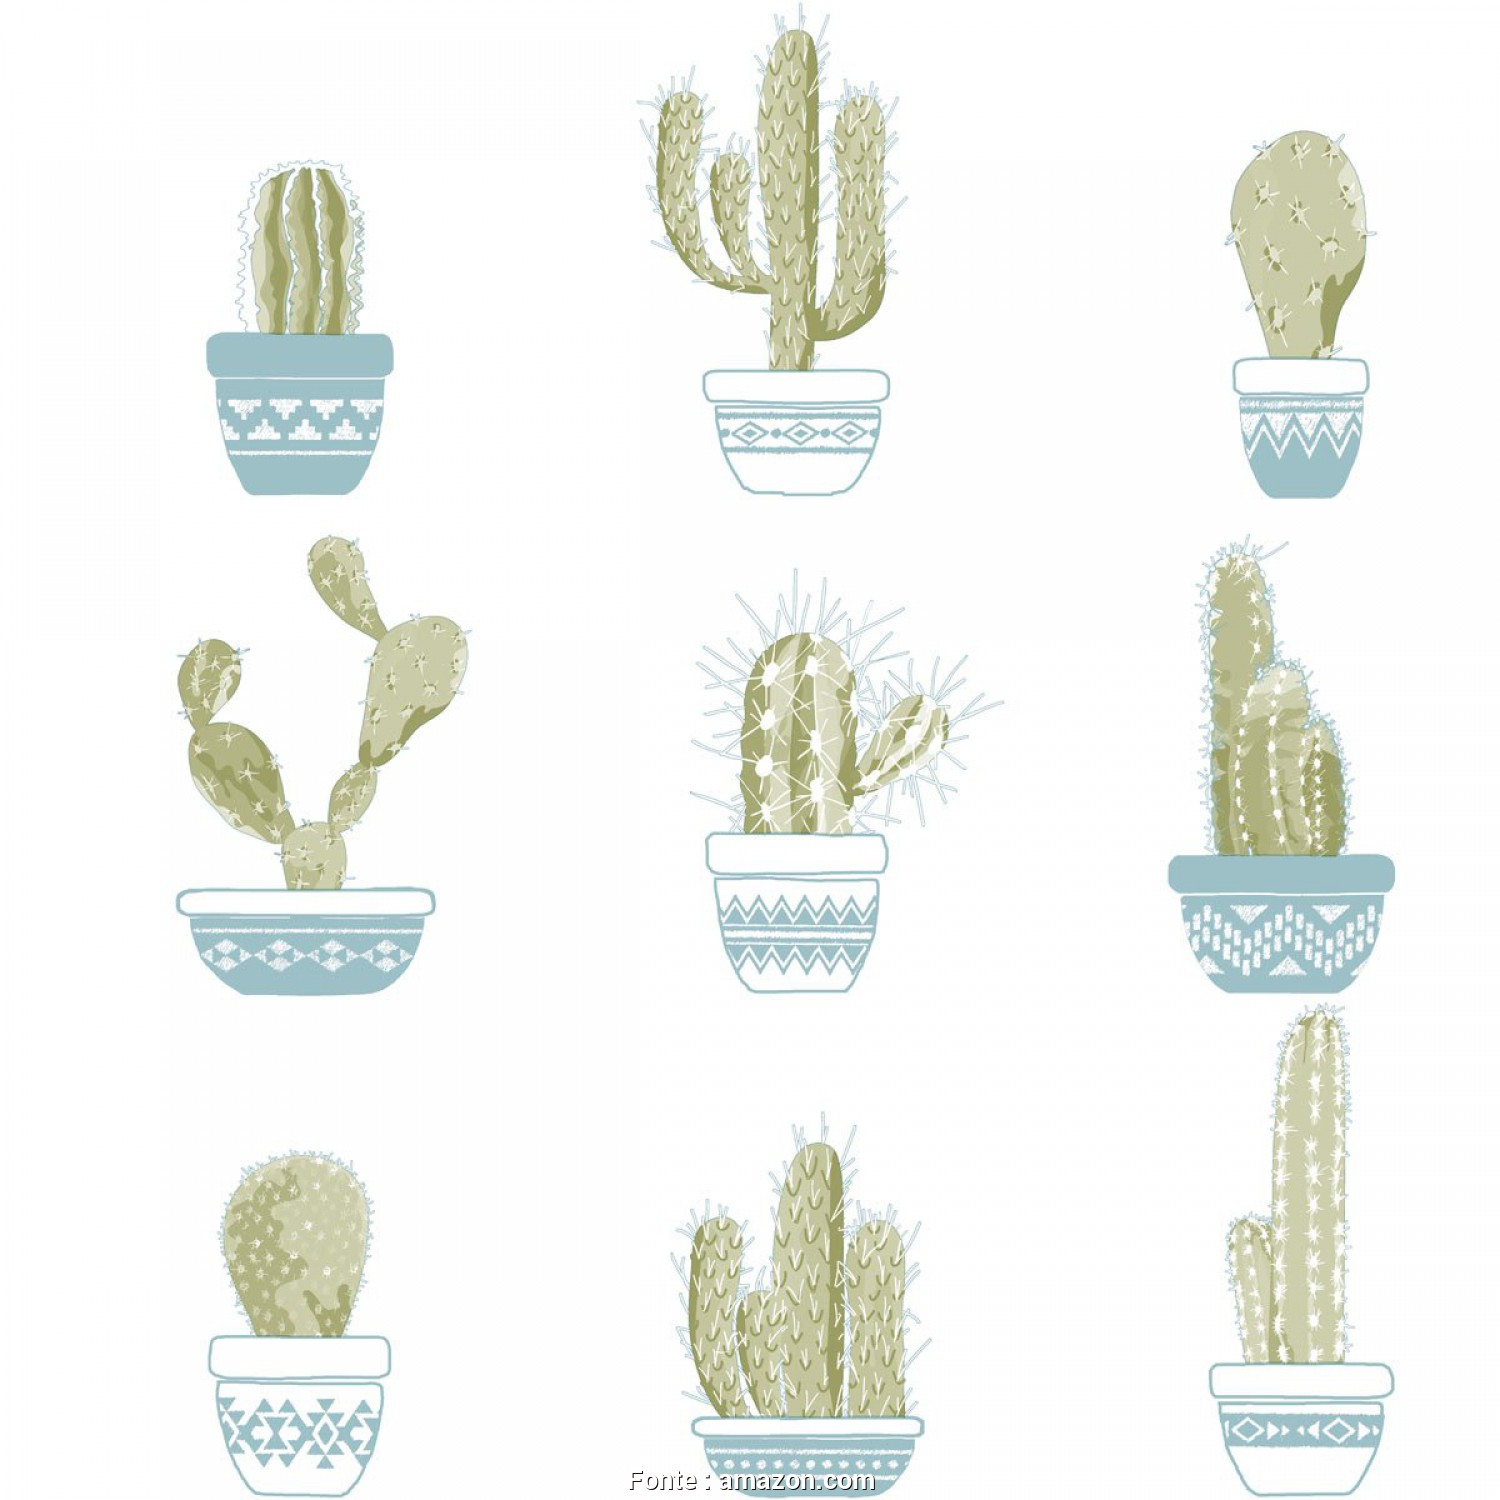 Copridivano Etnico Amazon, Bello Wallpaper, Home, Office, Retail/Funny Cactuses, Perfect, Children & Teens